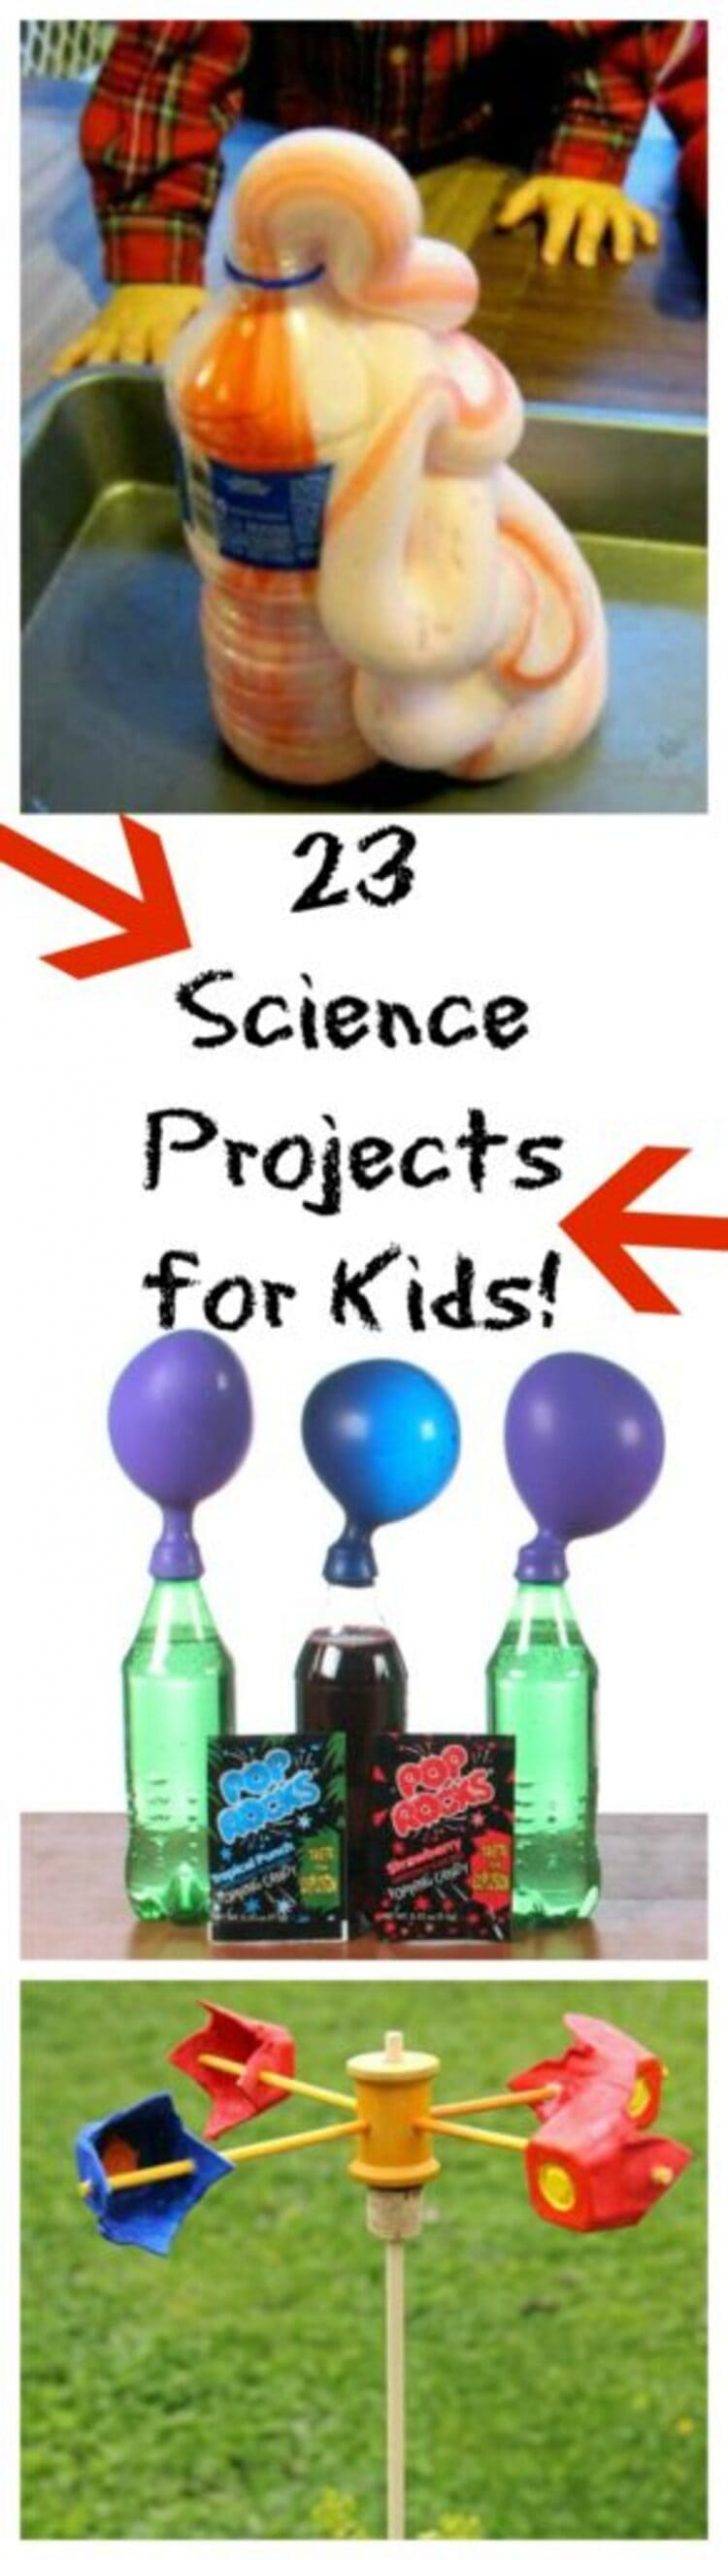 23 science projects for kids pinterest pin collage elephant toothpaste, blow balloons with soda, wind experiments